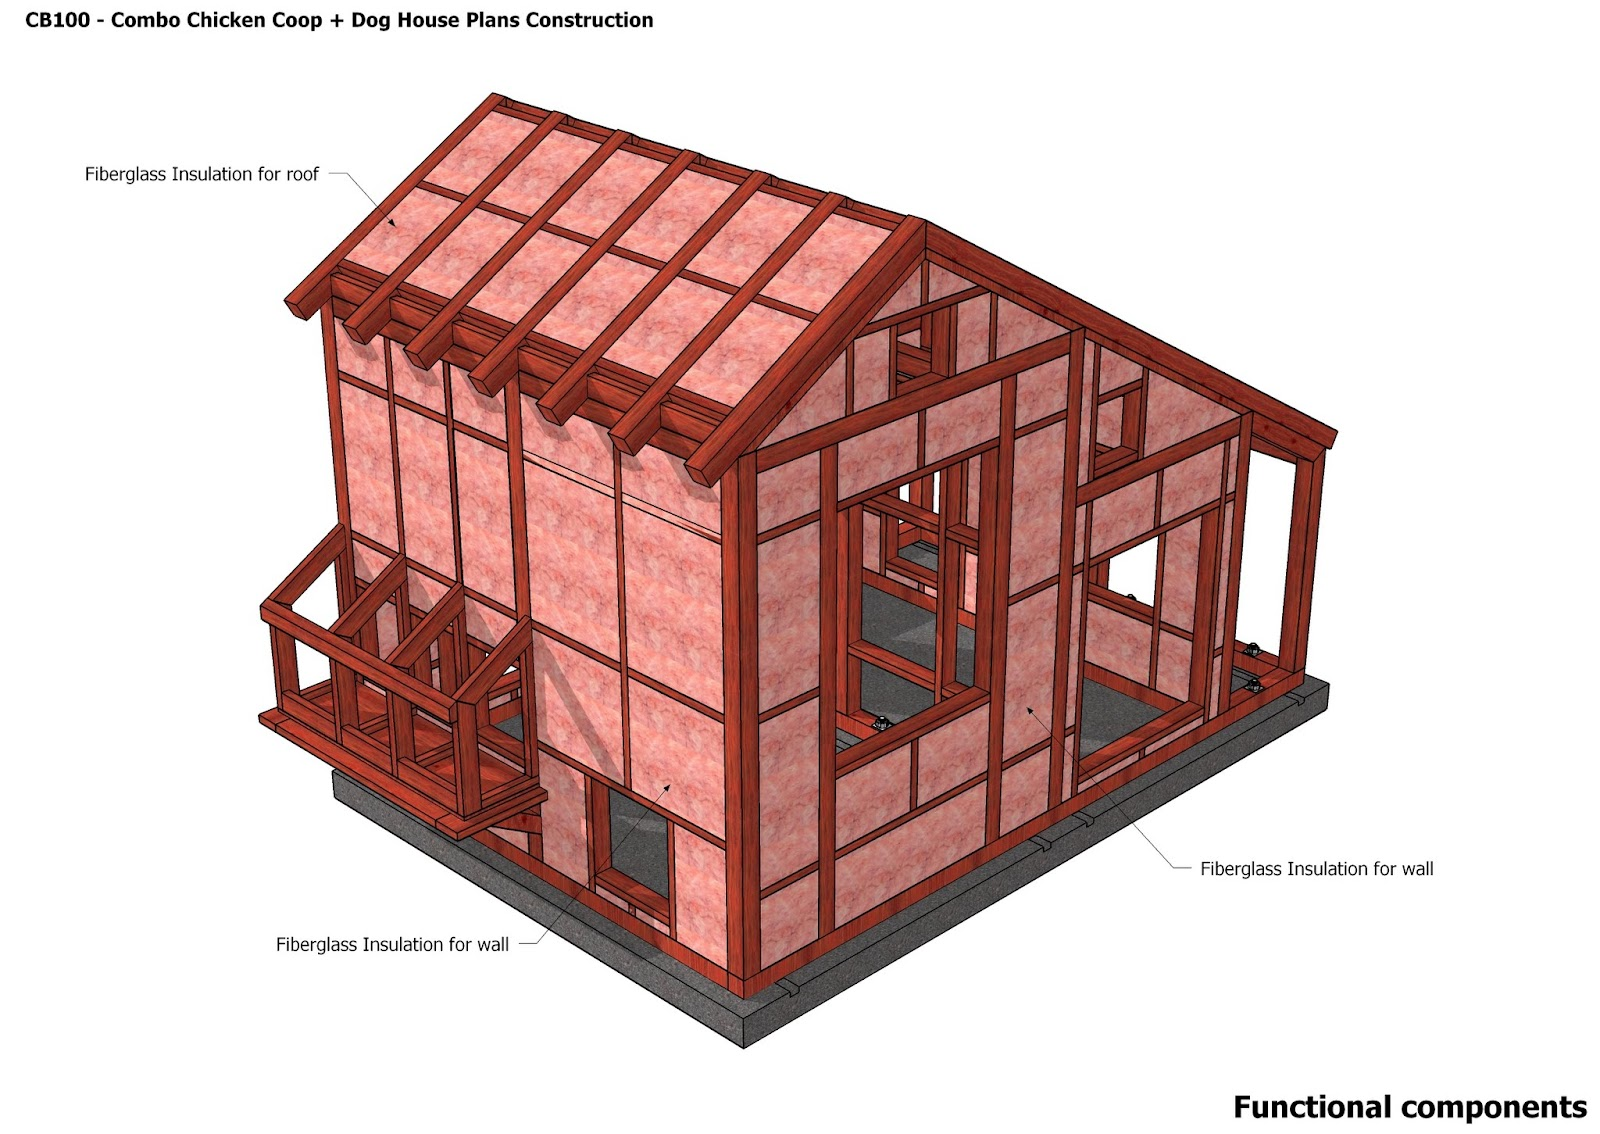 home garden plans cb100 combo plans chicken coop plans home garden plans cb100 combo plans chicken coop plans construction insulated dog house plans construction